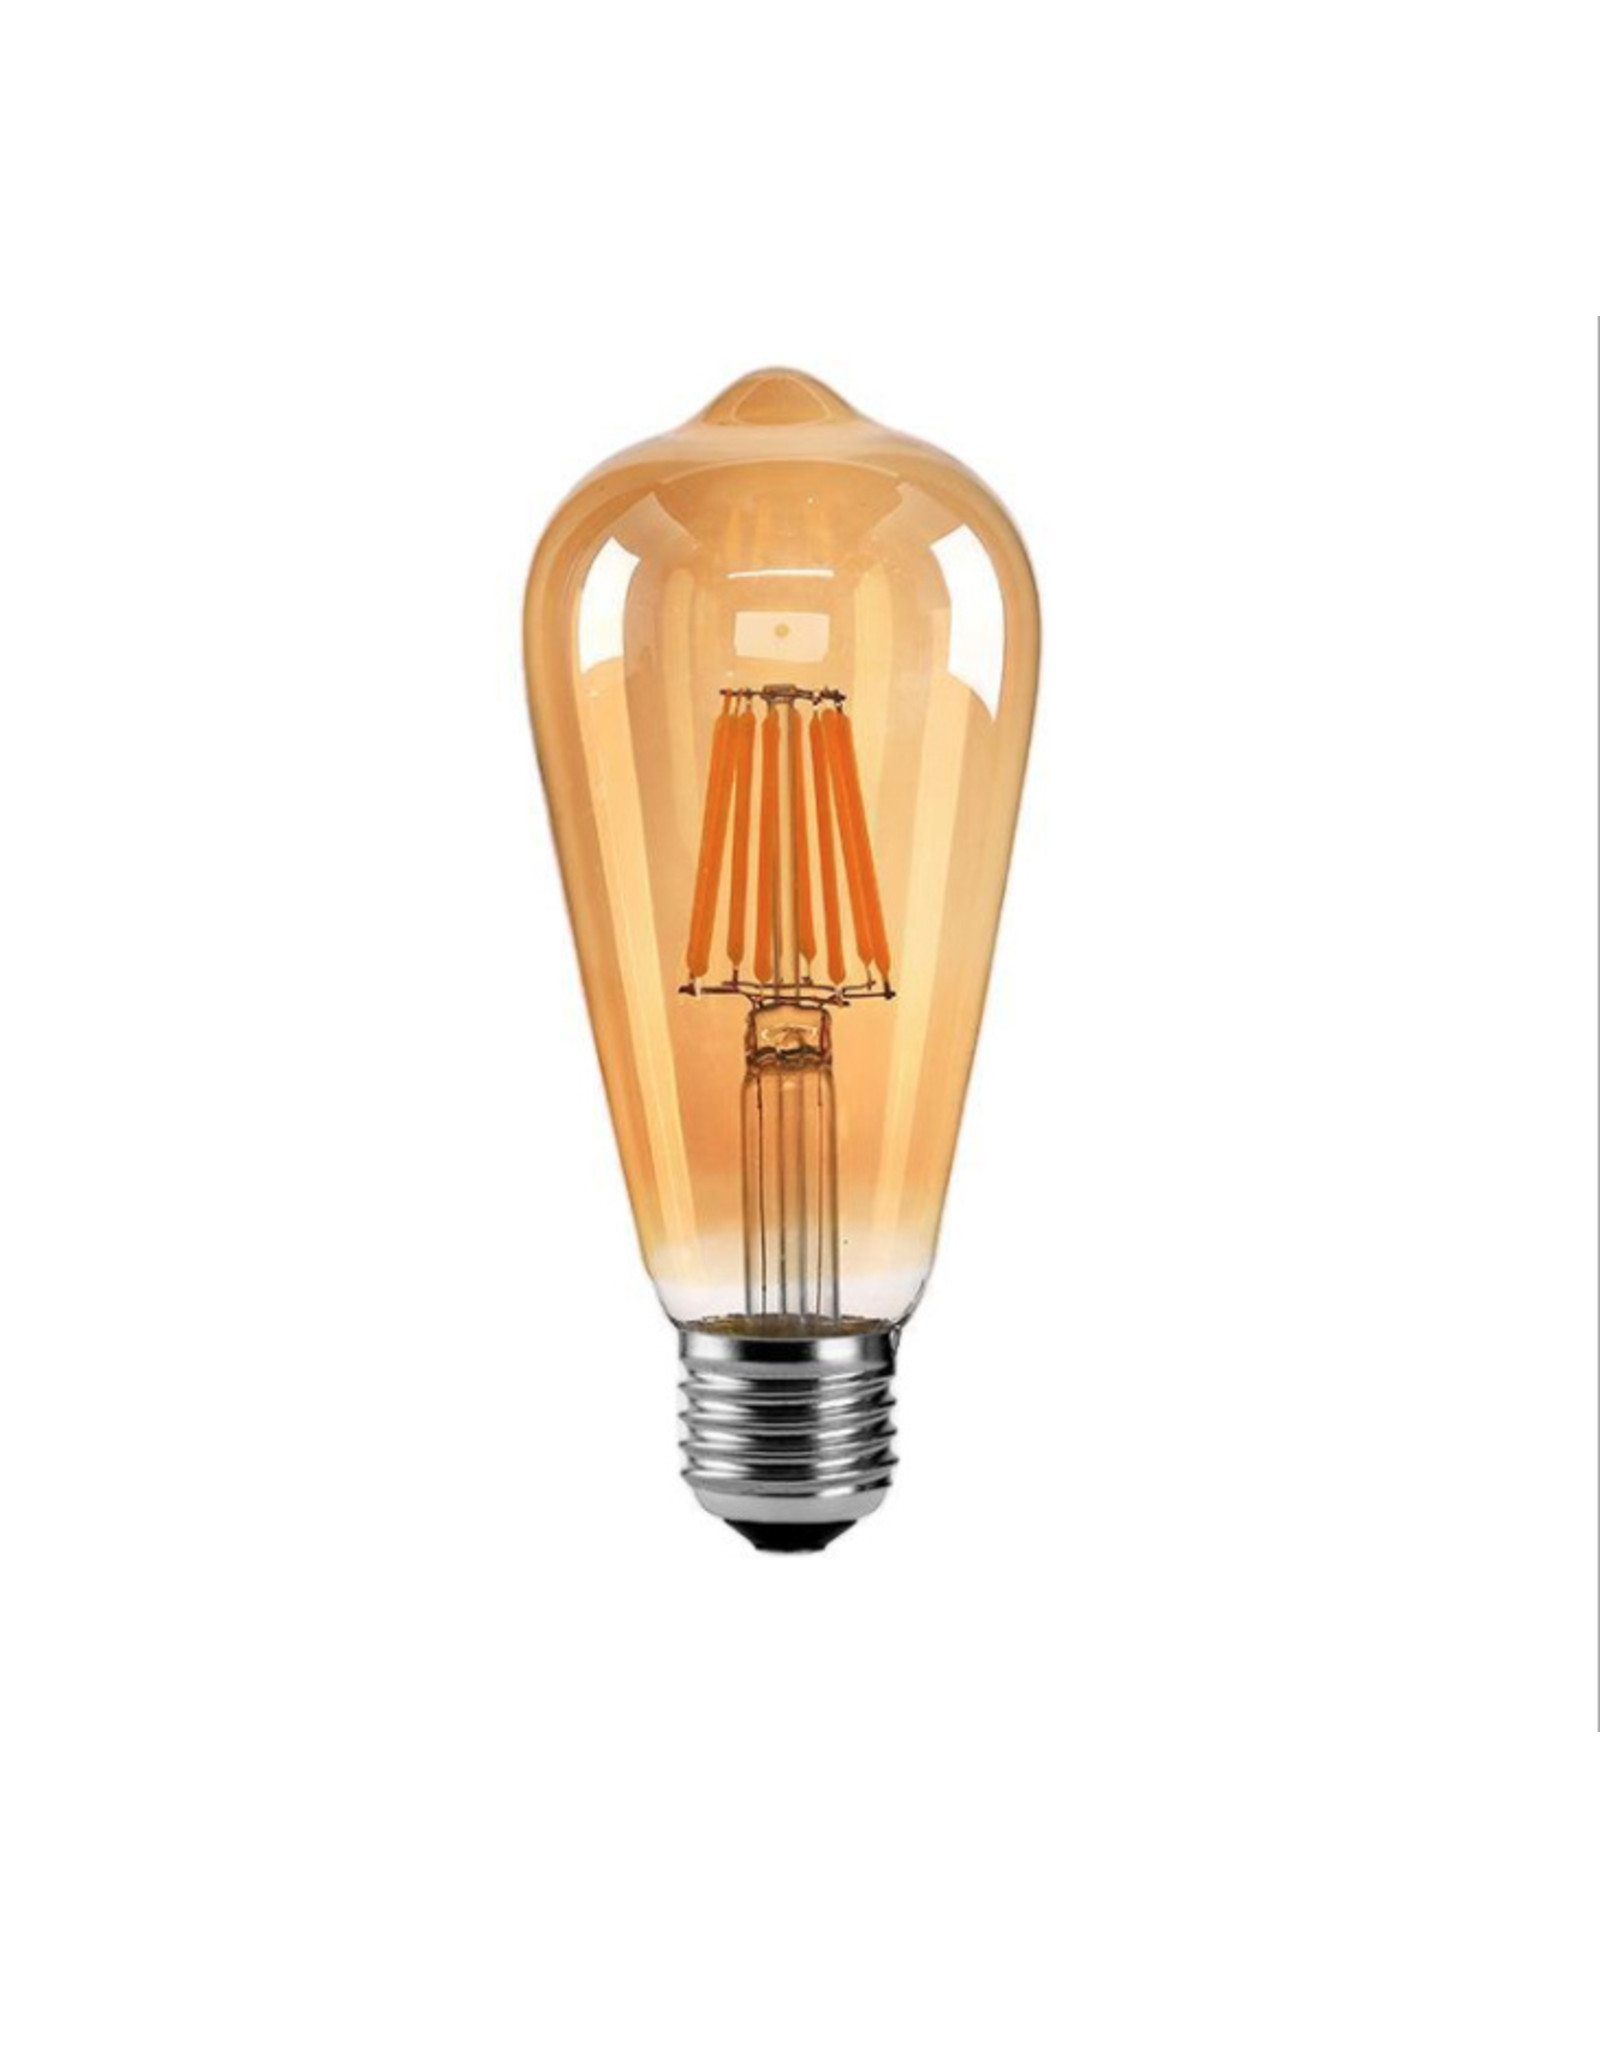 Lights ST64C - 4W - 2700K - E27 - SMOKED - 220V - DIMMABLE